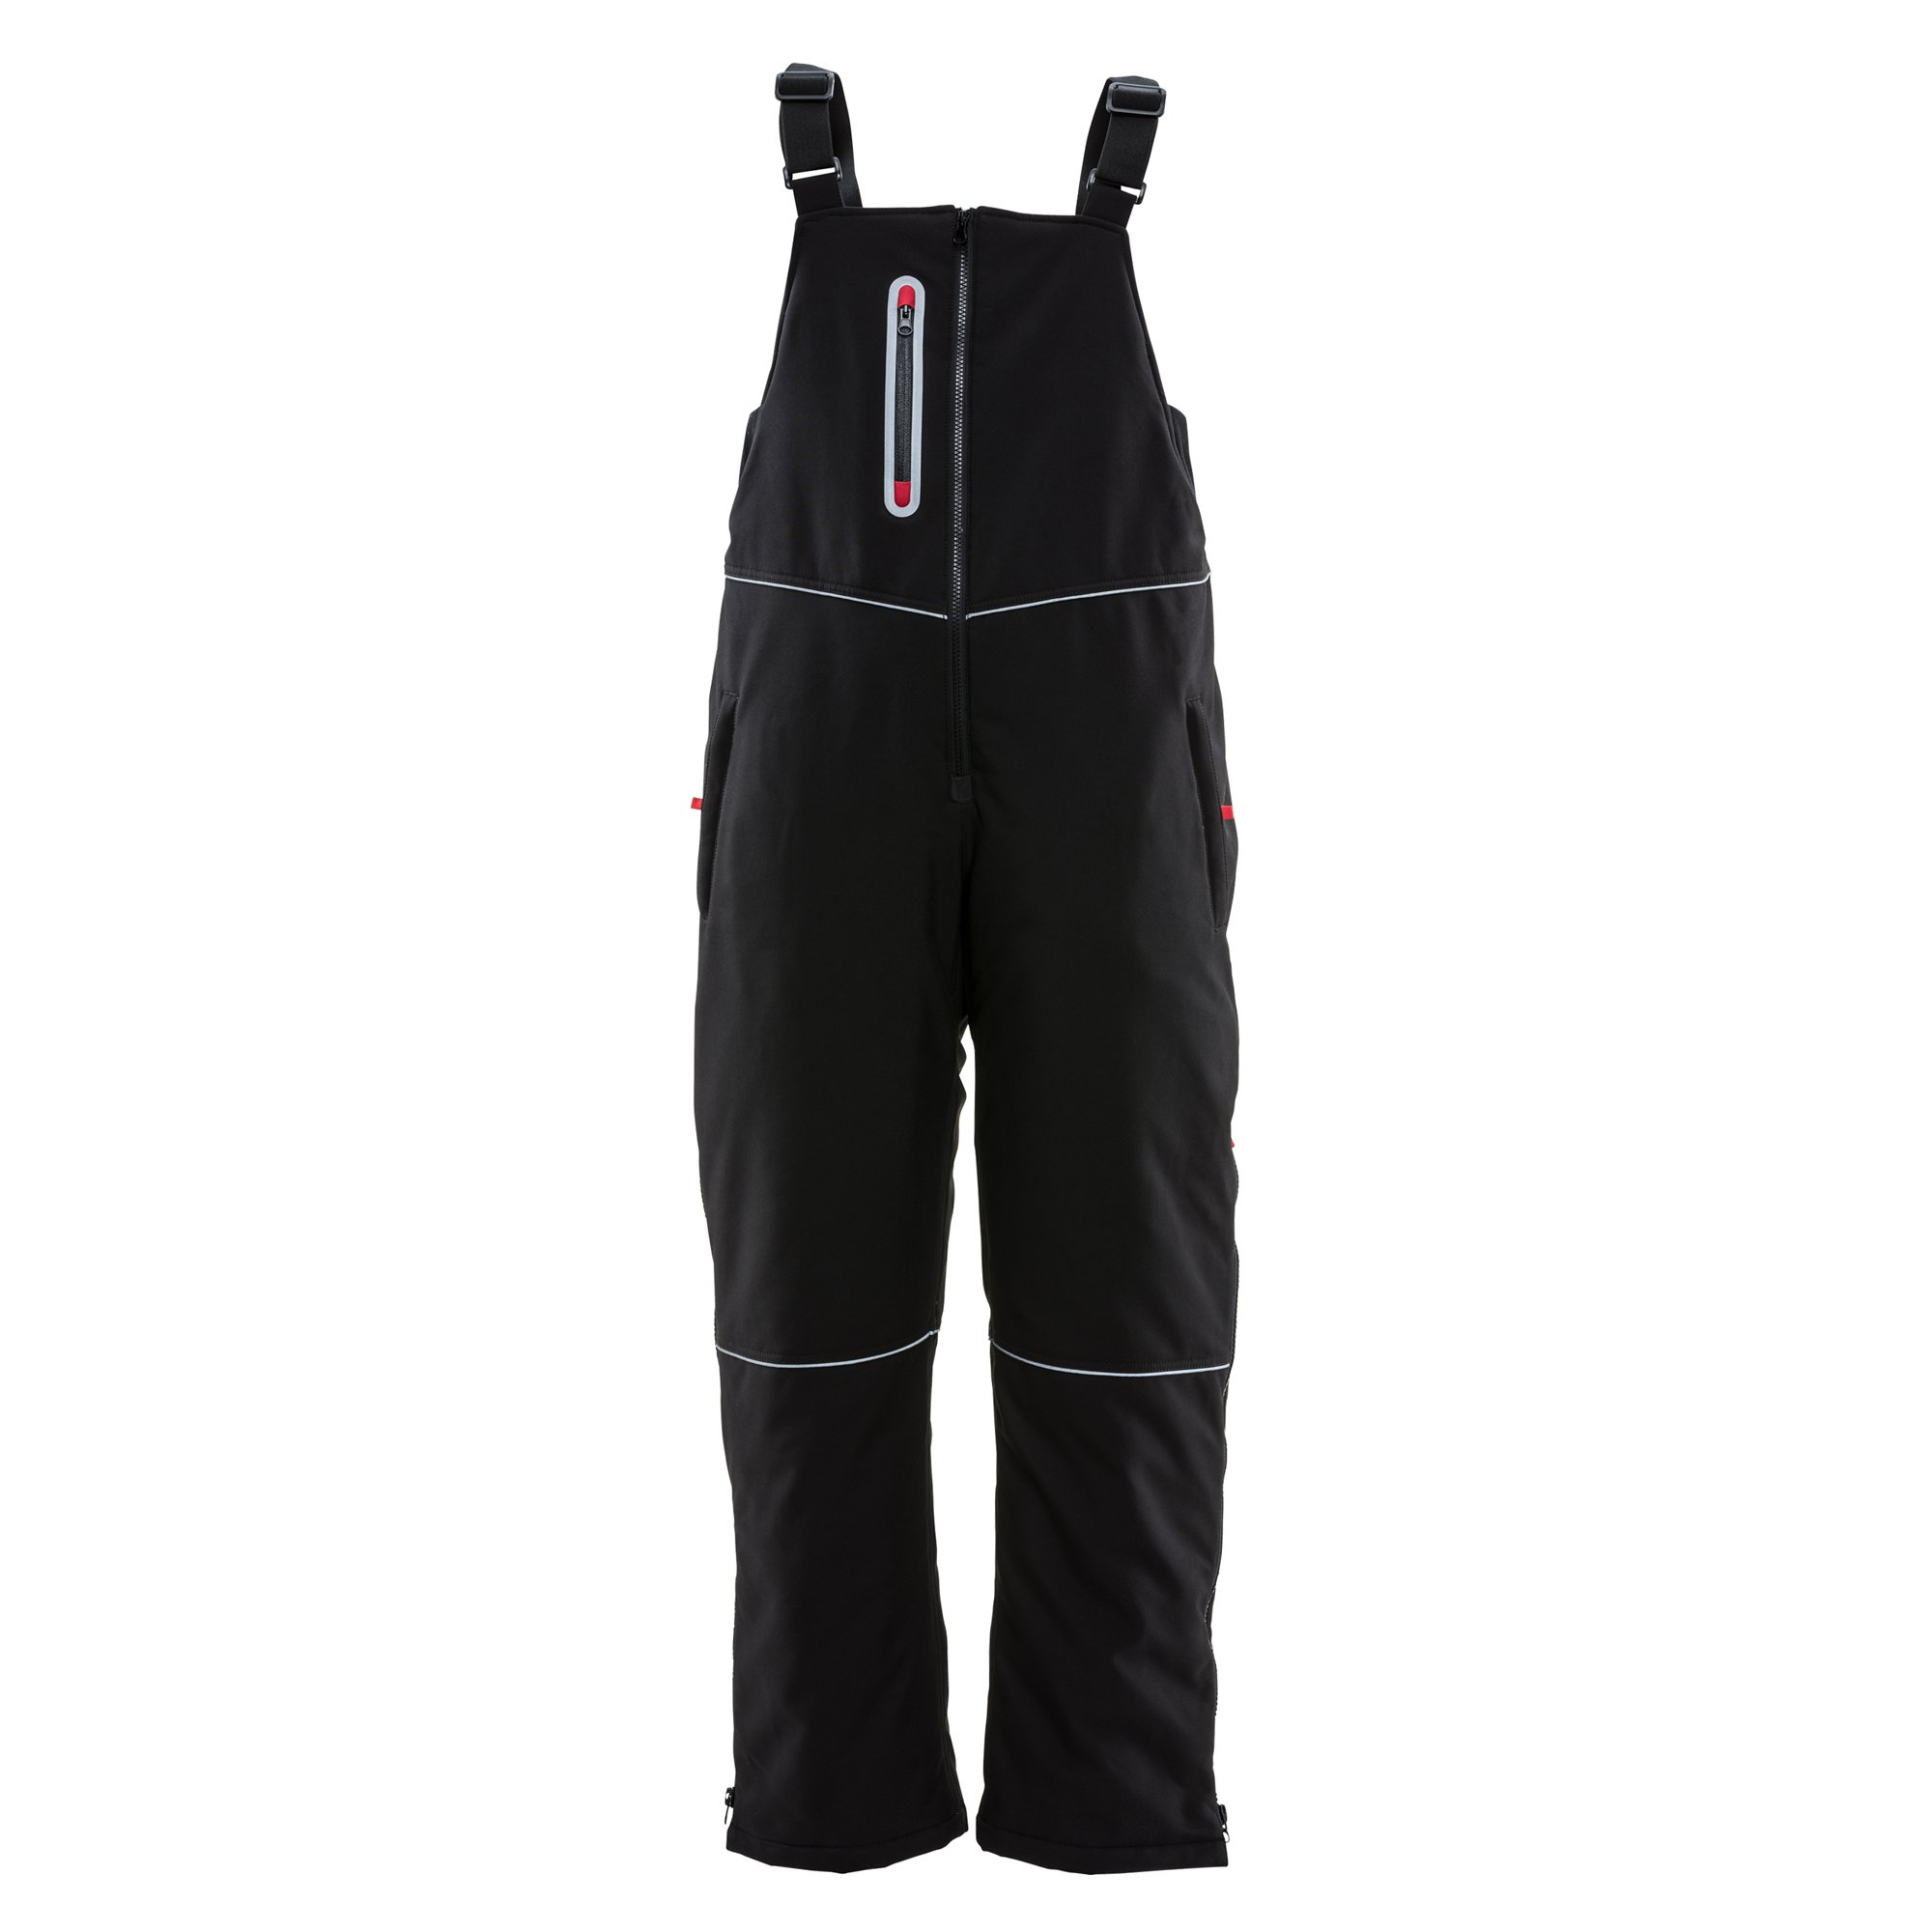 Refrigiwear Women's Insulated Softshell Bib Overalls, Large